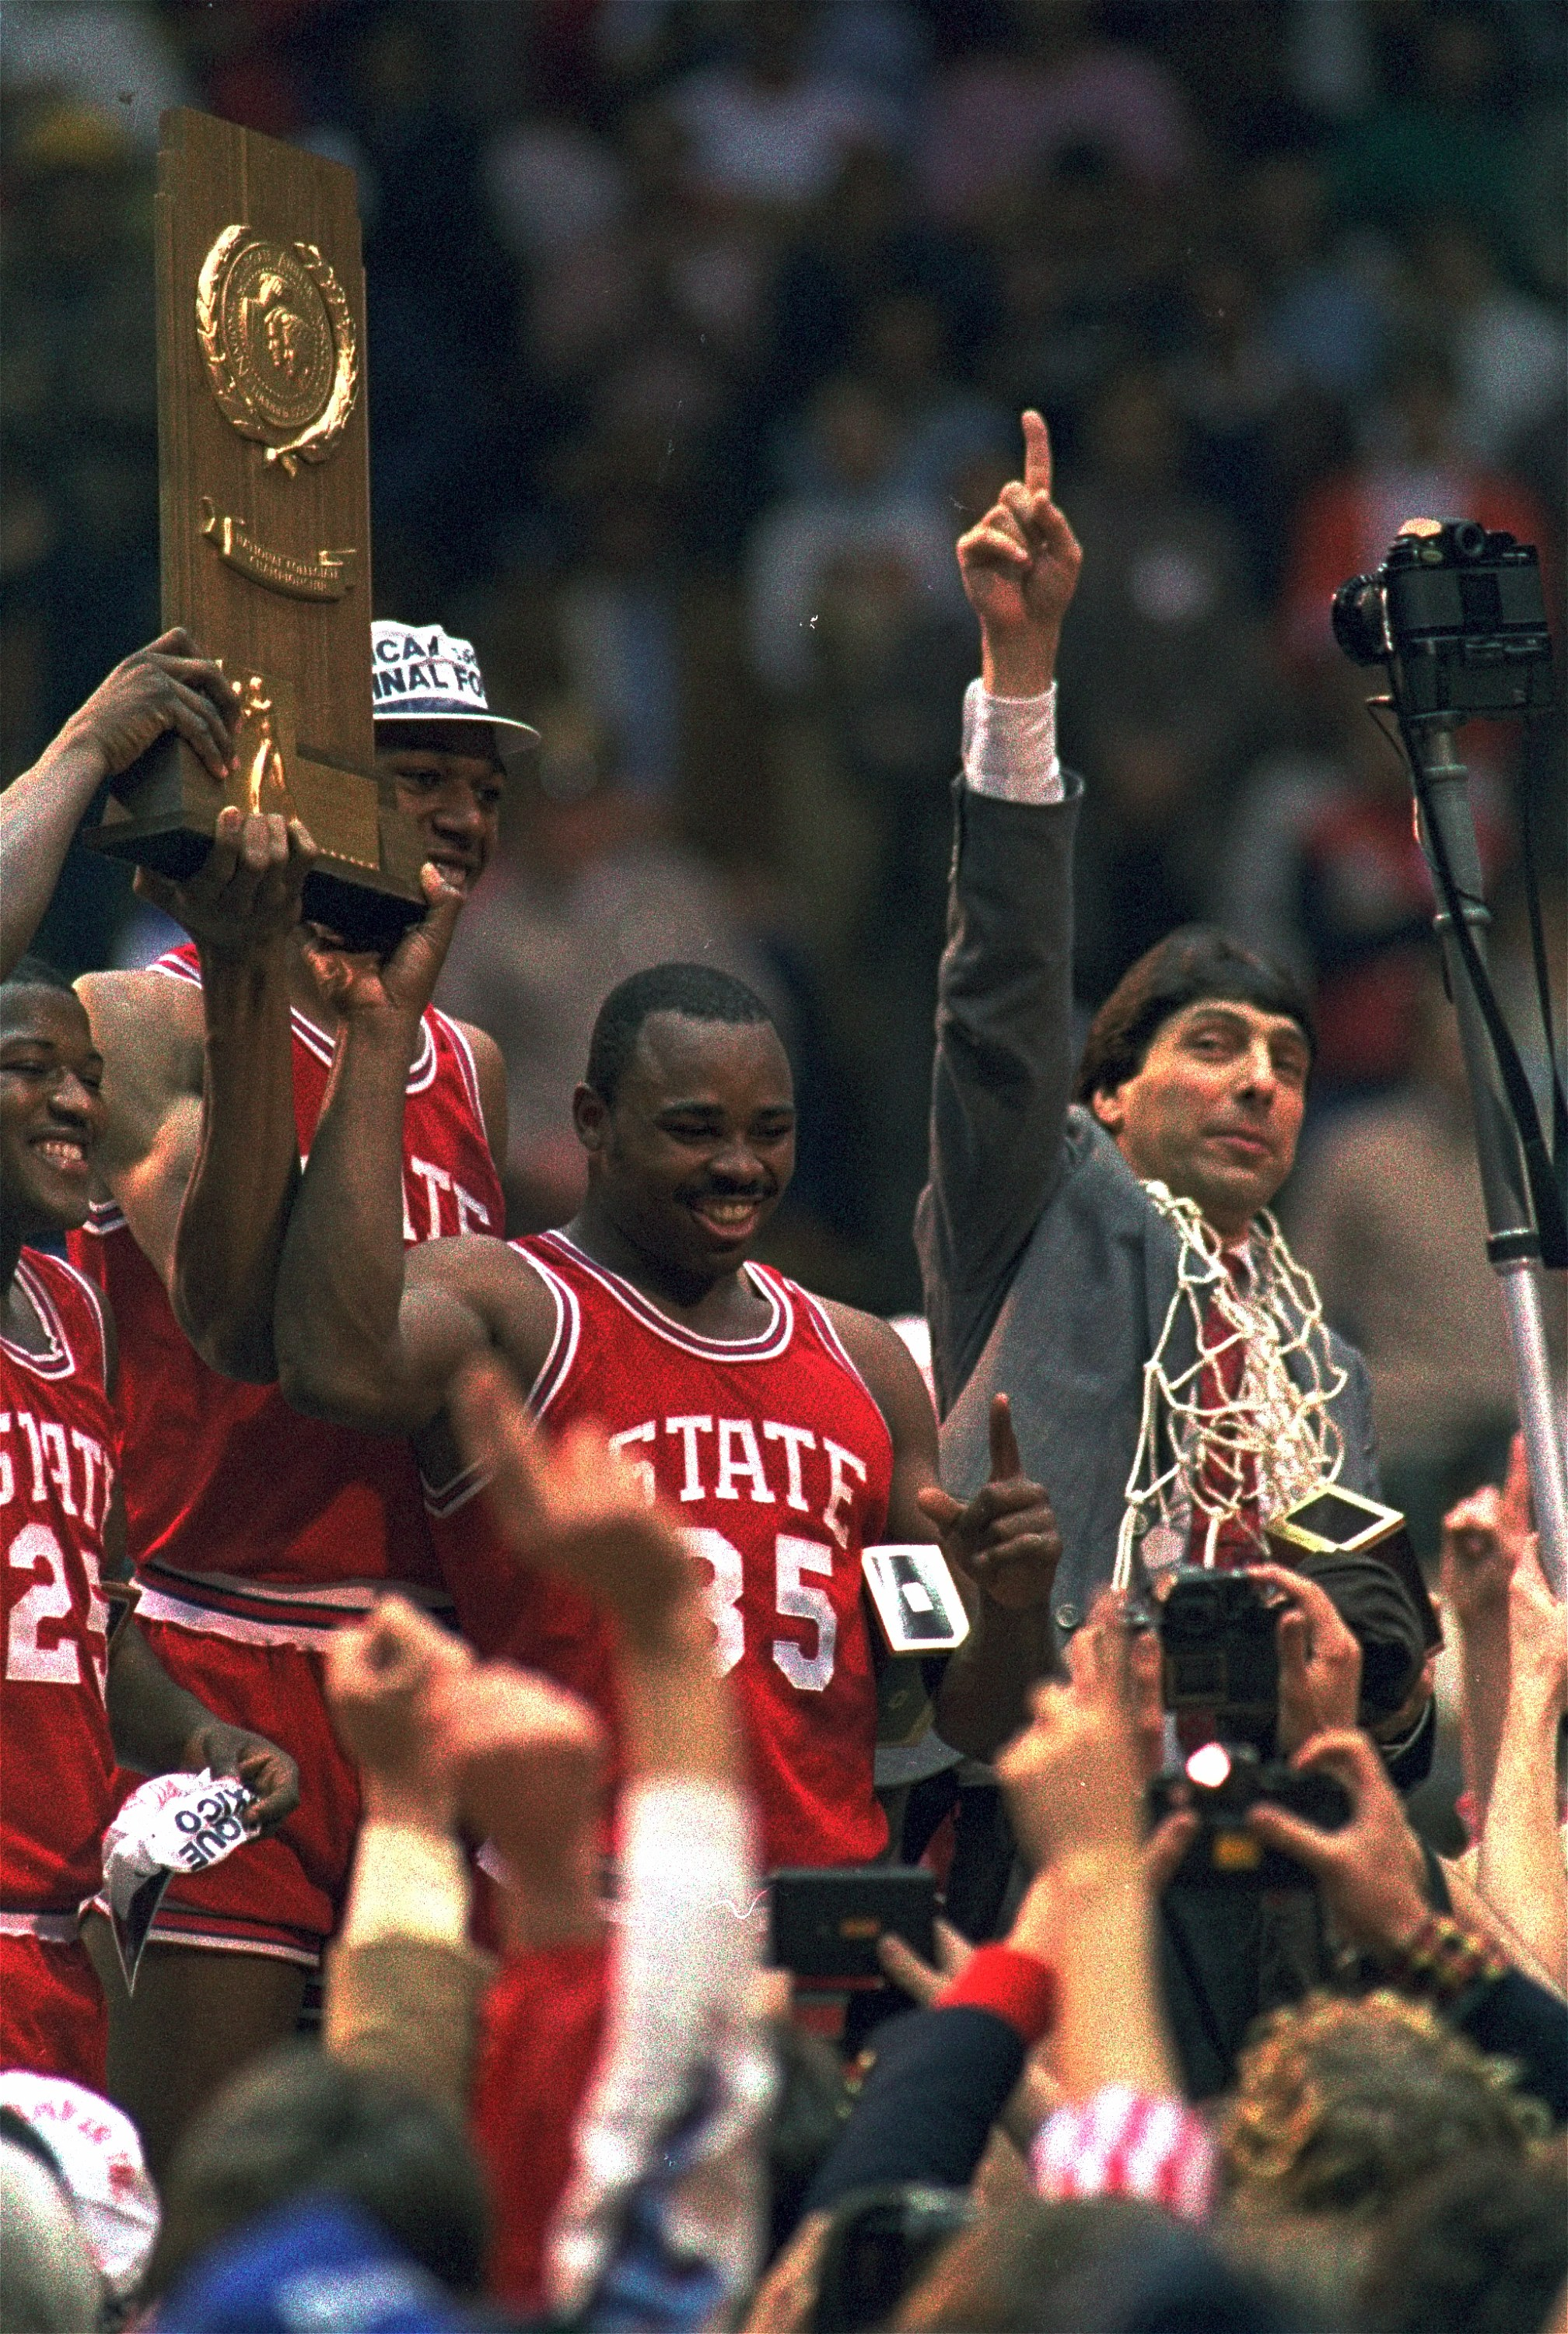 Wolfpack Flashback: The Impossible Dream Come True